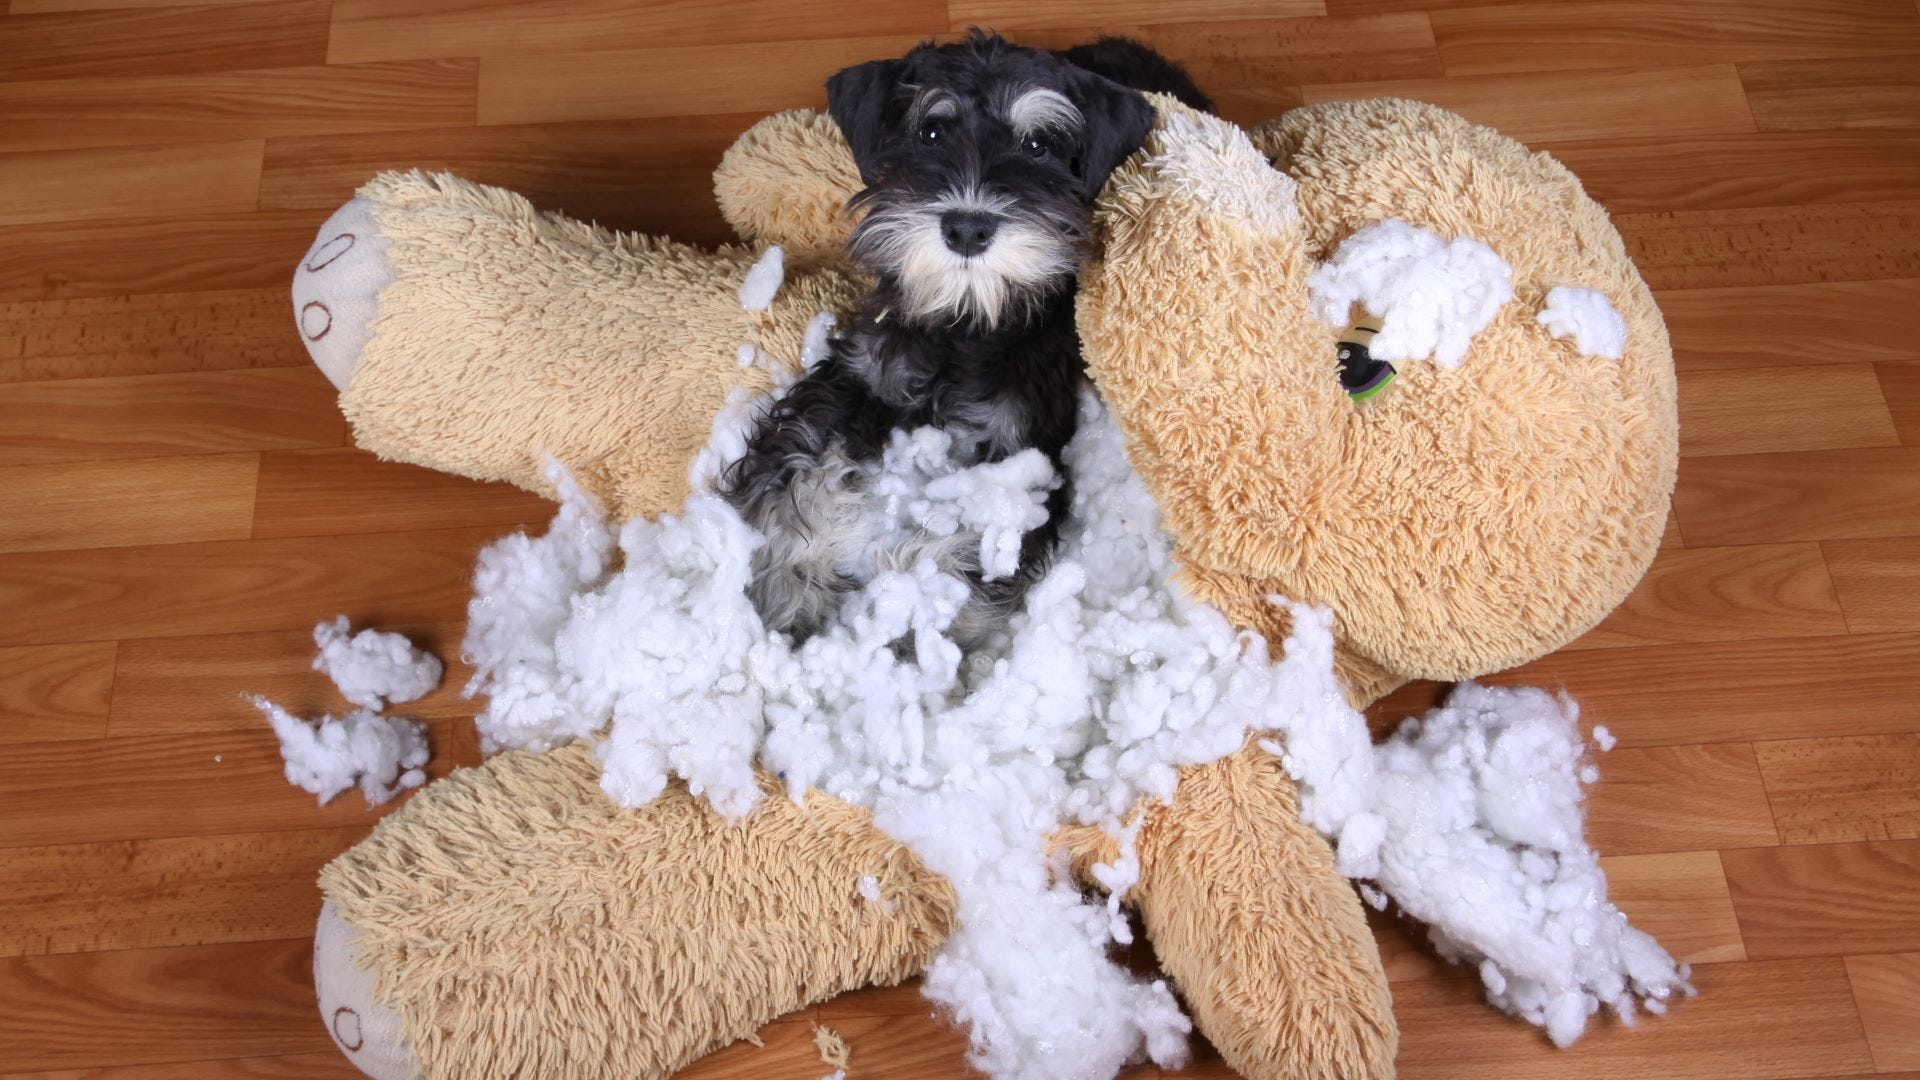 A Schnauzer dog lying in the middle of a destroyed plush toy.